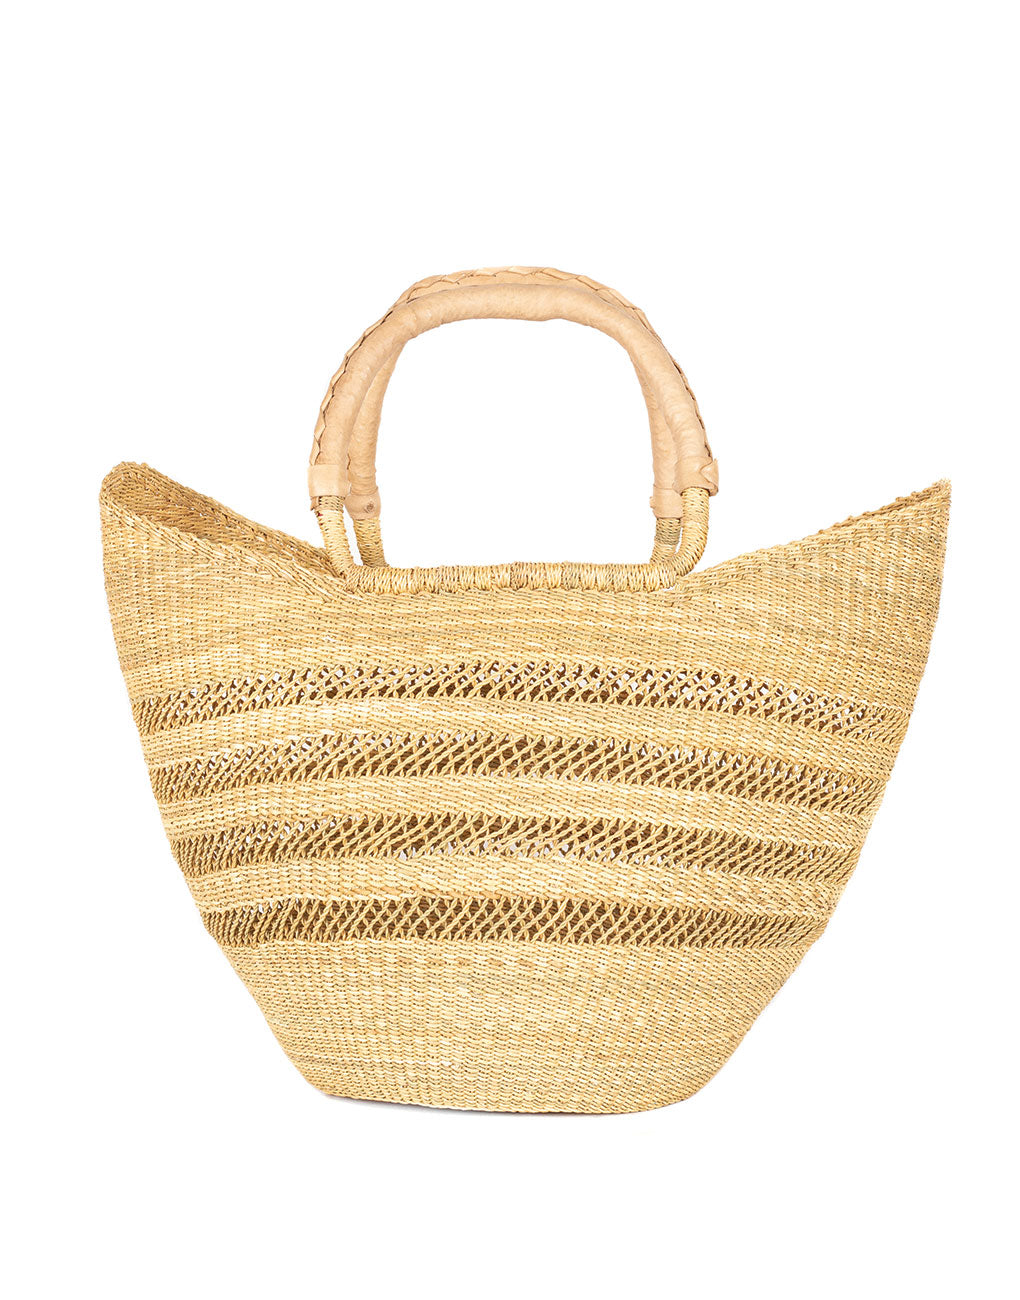 Open Weave Bohemian Market Basket - Natural | The Little Market